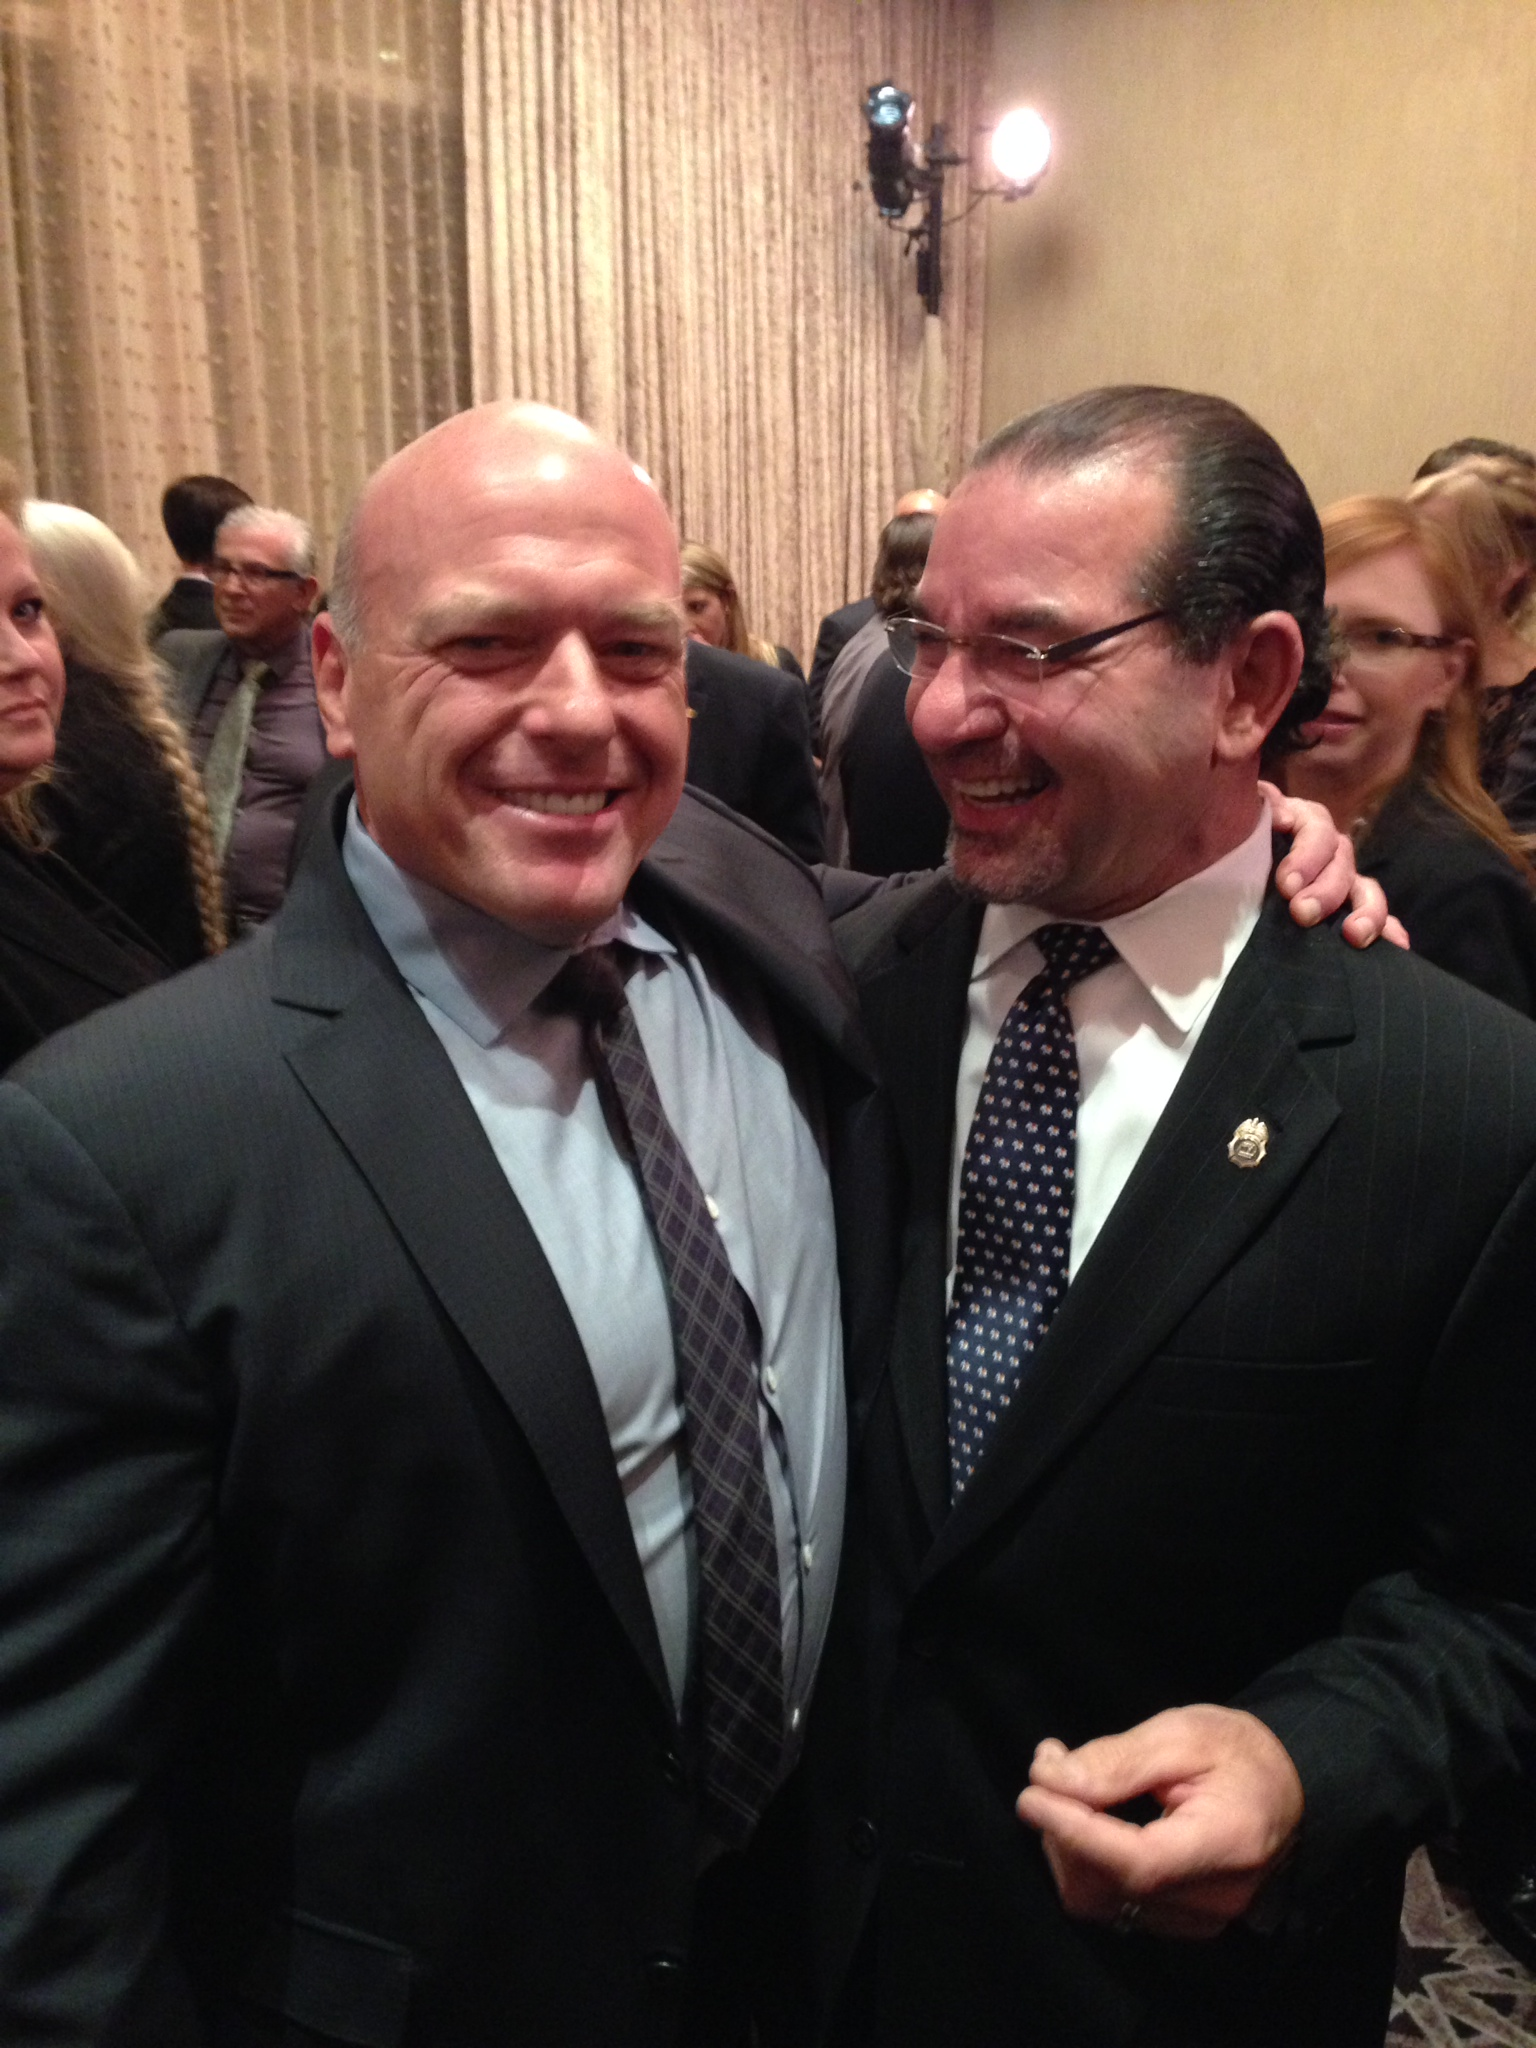 Retired DEA Special Agent Dan Staffieri and Breaking Bad Star Dean Norris (played DEA ASAC Hank Schrader)